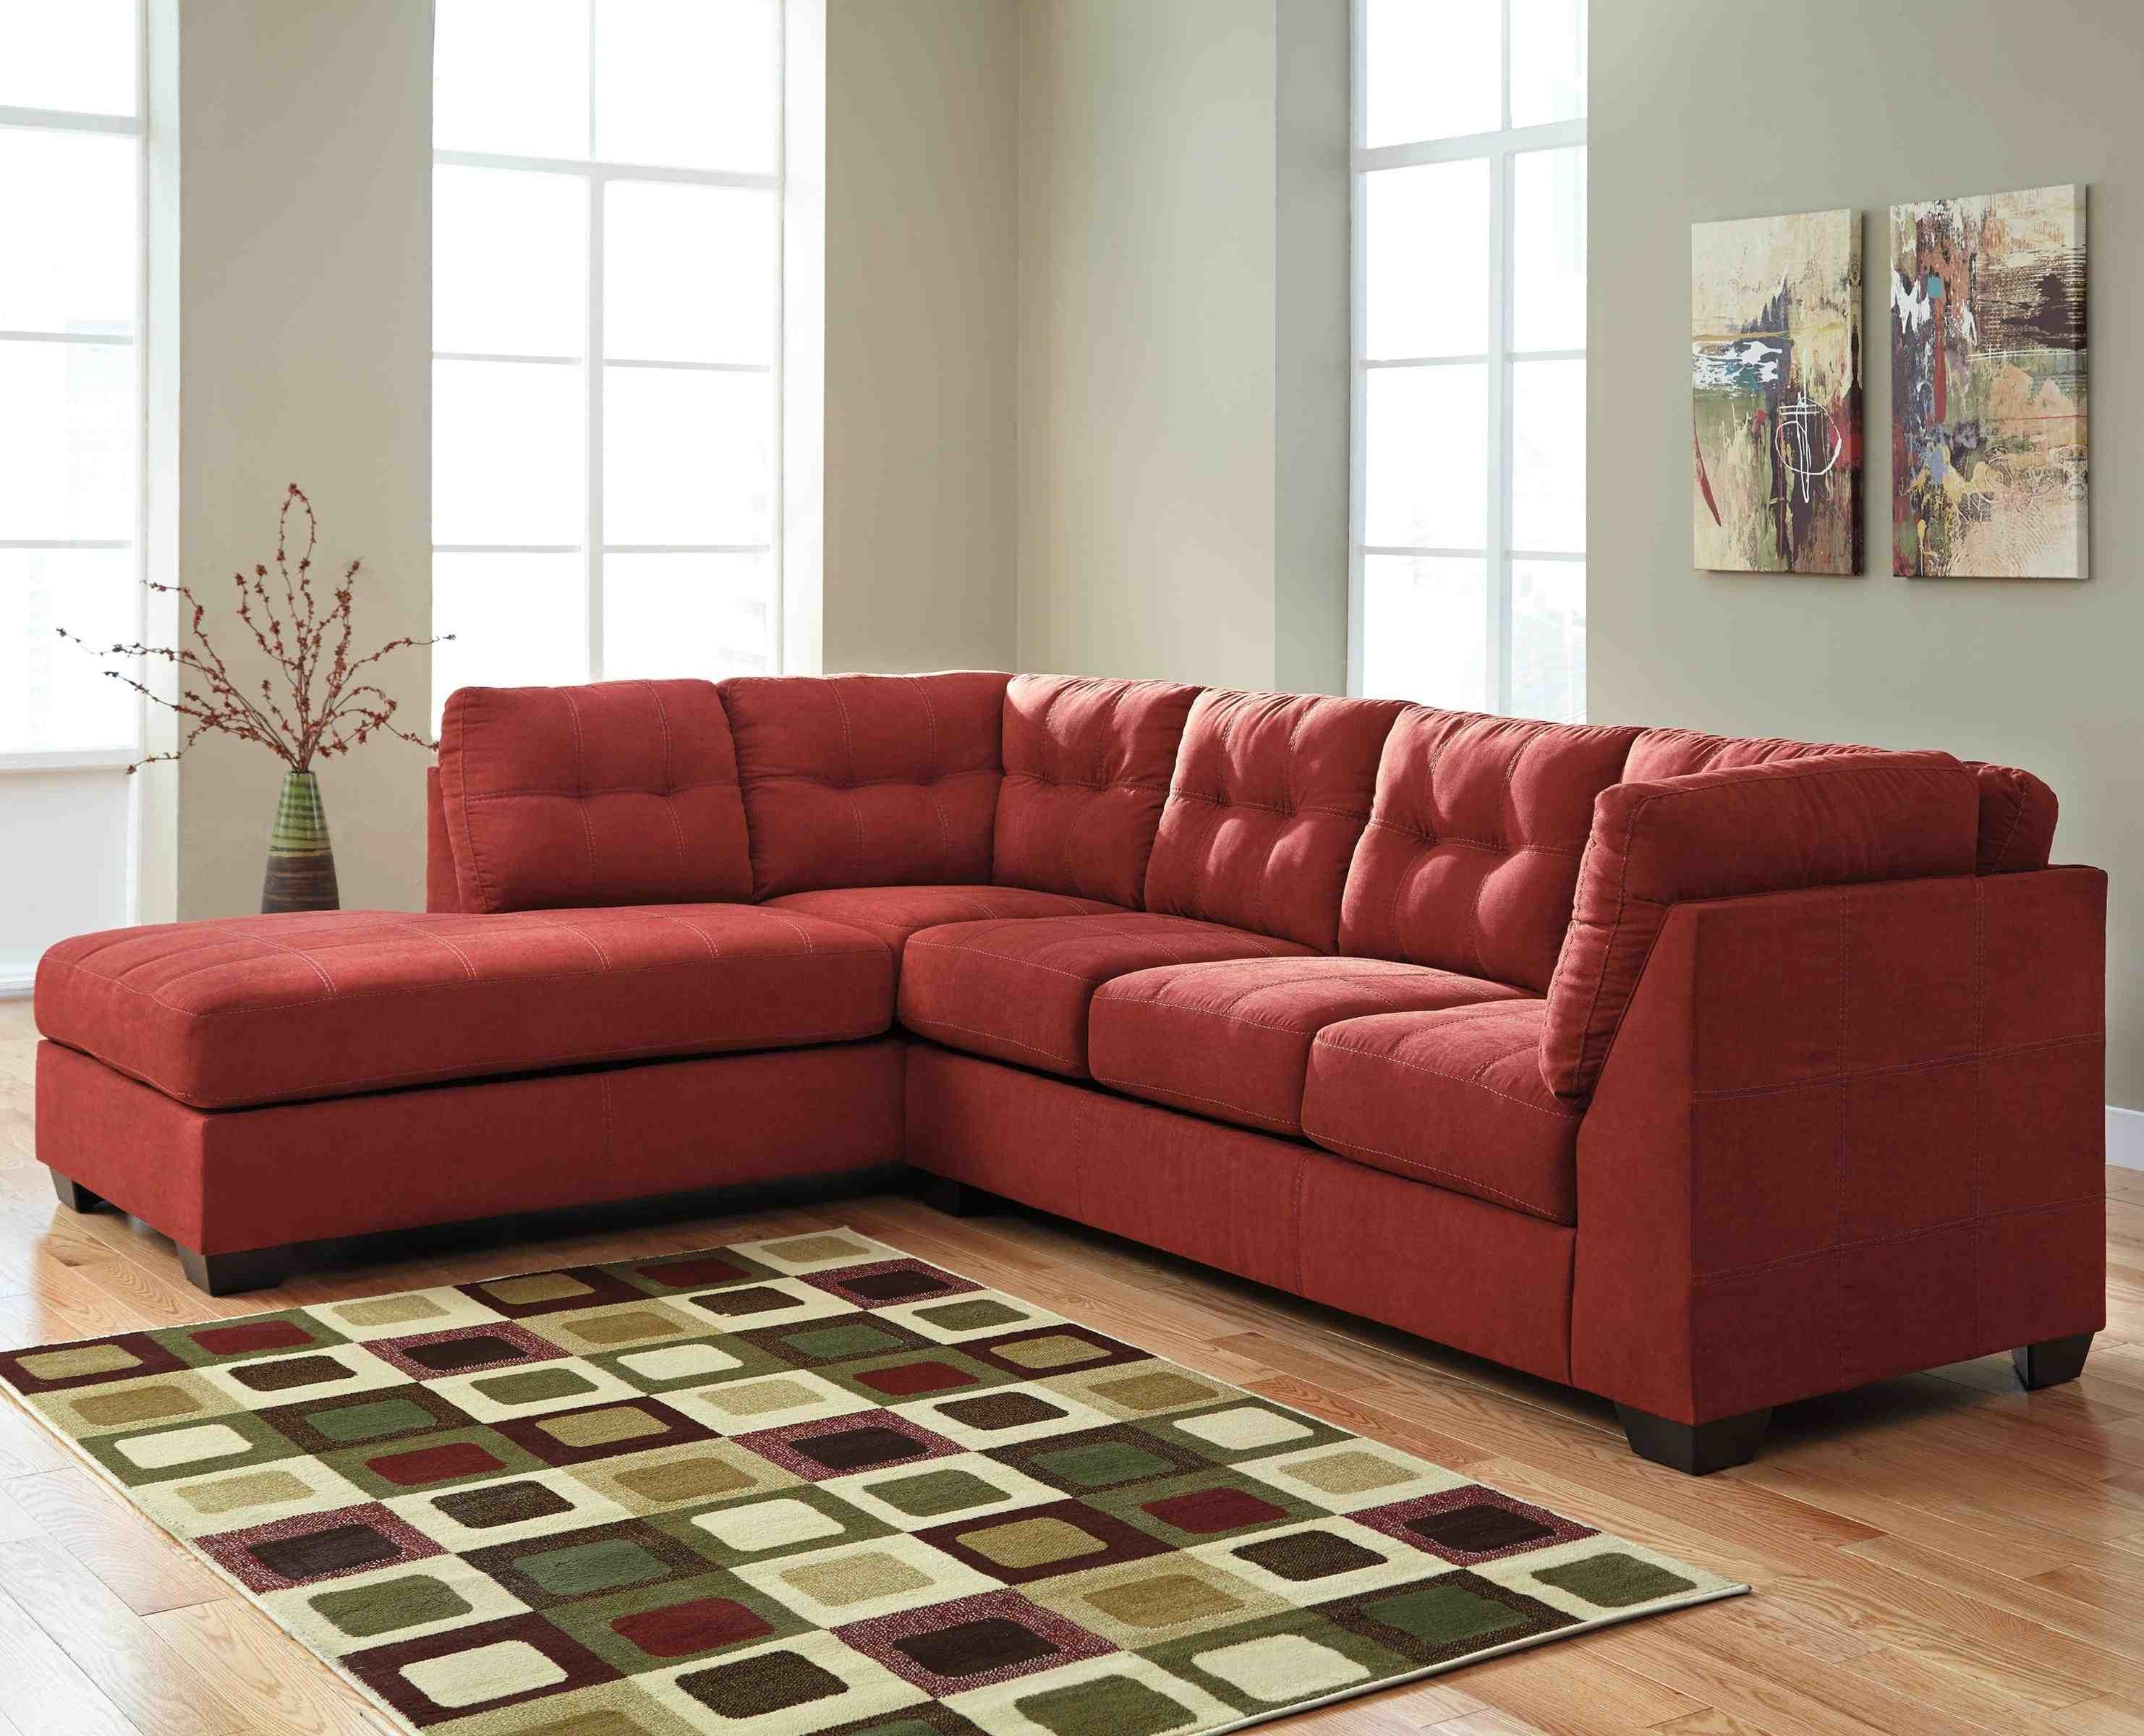 Microfiberctional Sofa With Chaise Amazing Photo Inspirations for Arrowmask 2 Piece Sectionals With Laf Chaise (Image 22 of 30)